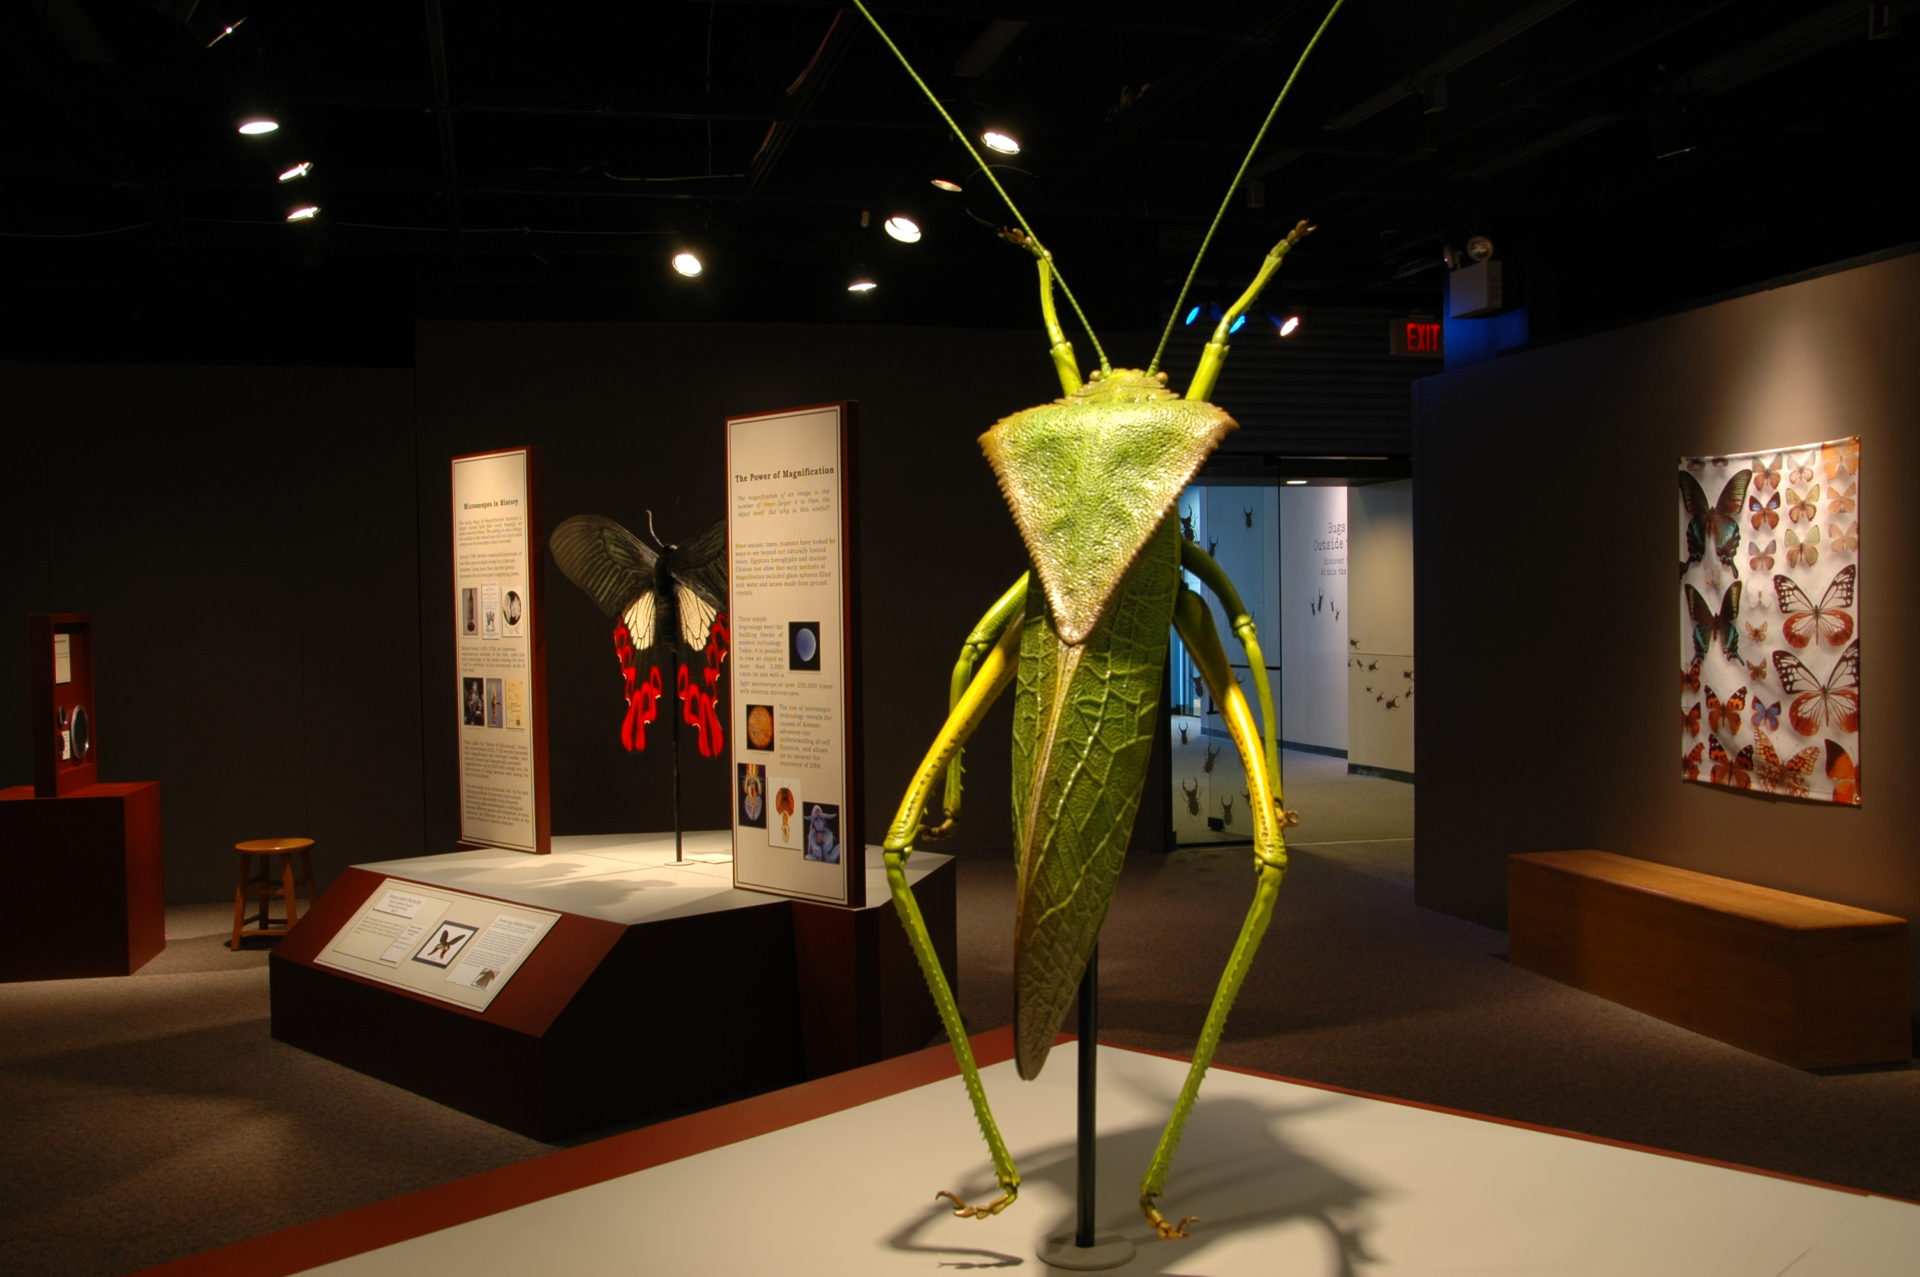 Katydid (large green insect) sculpture in museum